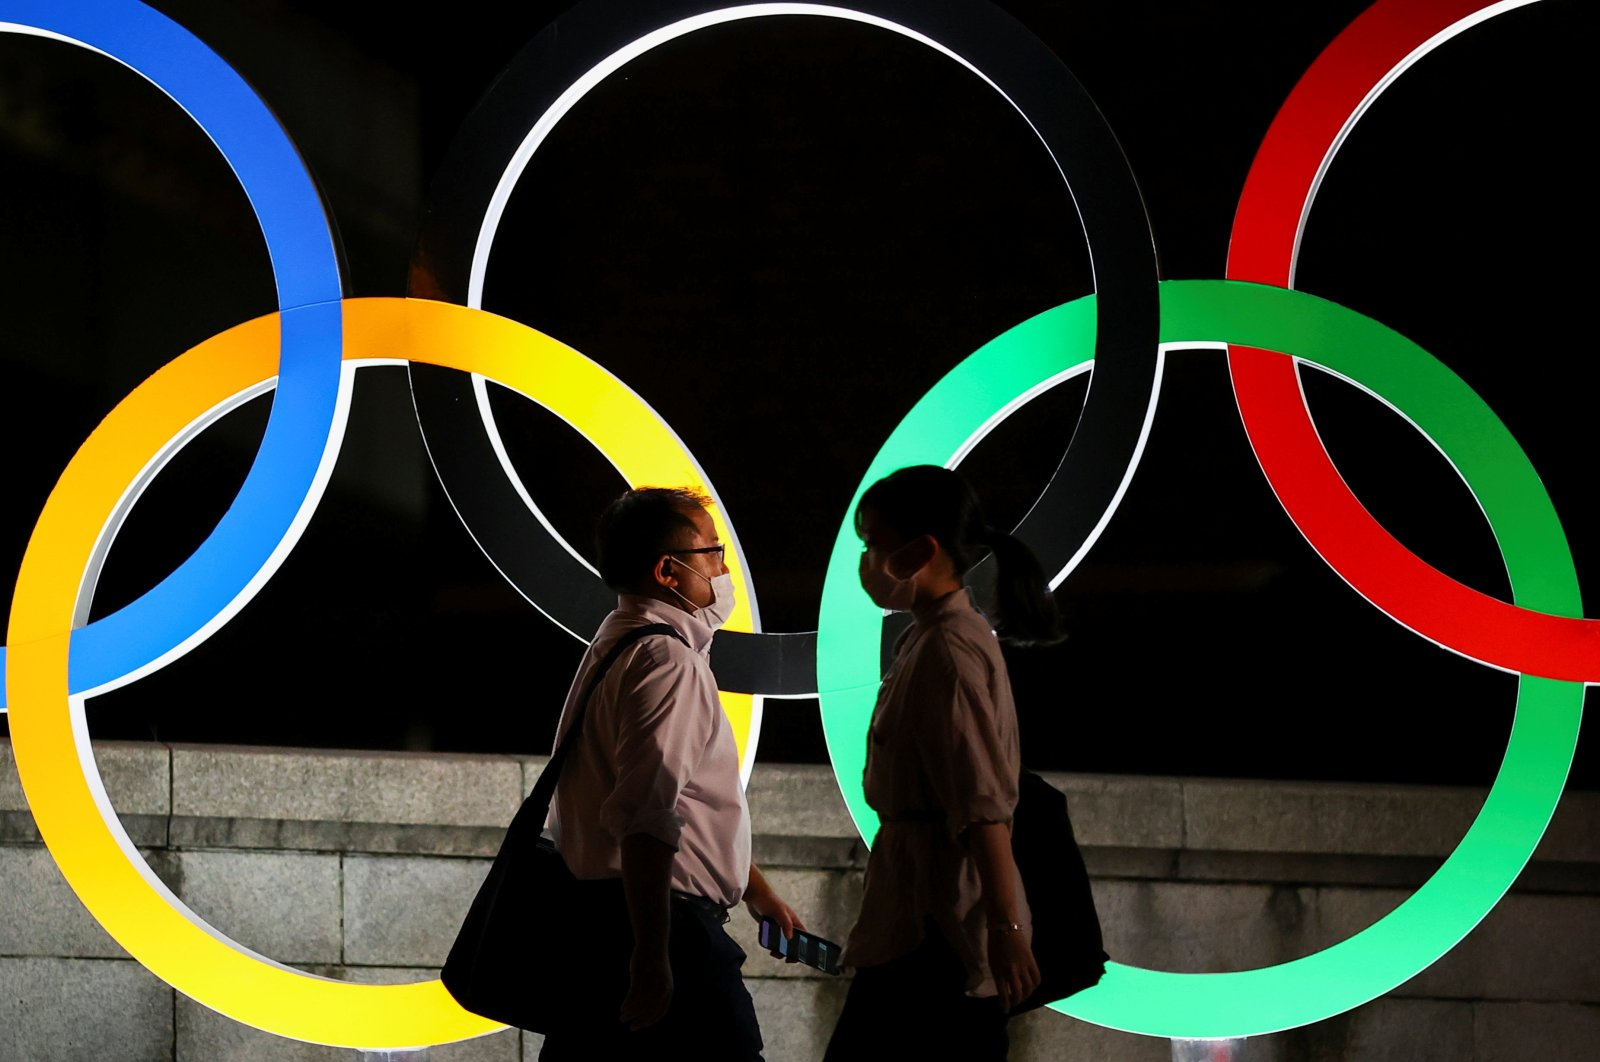 Passersby wearing protective face masks walk past an illuminated Olympic Rings monument during the Tokyo 2020 Olympic Games, Tokyo, Japan, Aug. 5, 2021. (Reuters Photo)